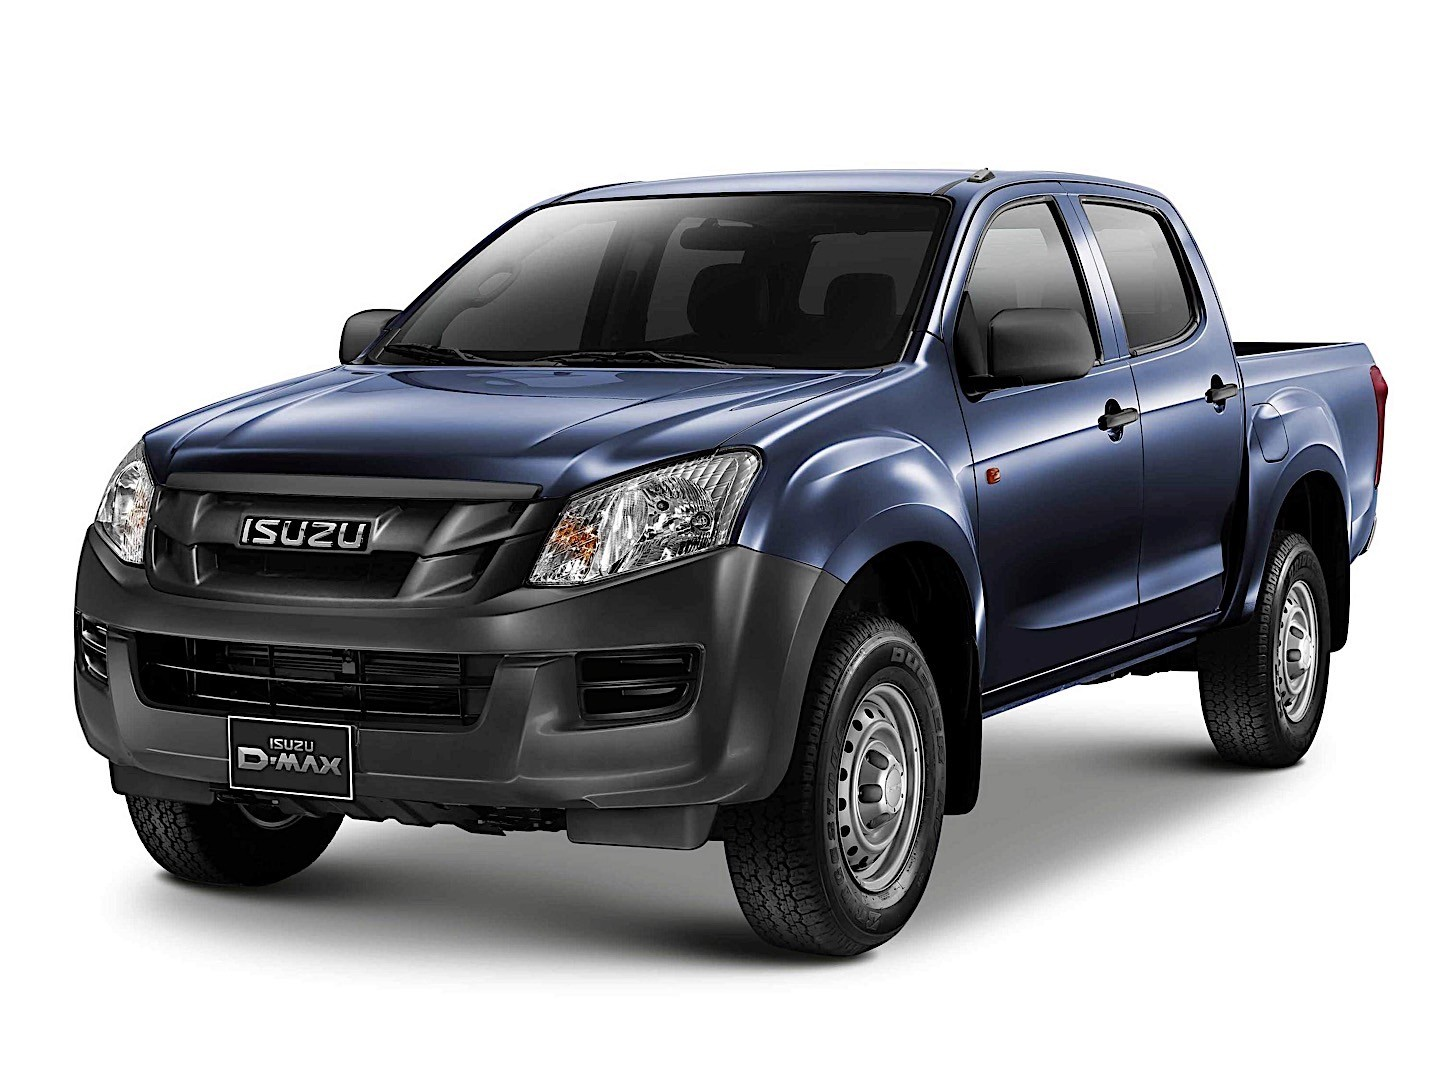 isuzu d max 4x4 2014 autos post. Black Bedroom Furniture Sets. Home Design Ideas